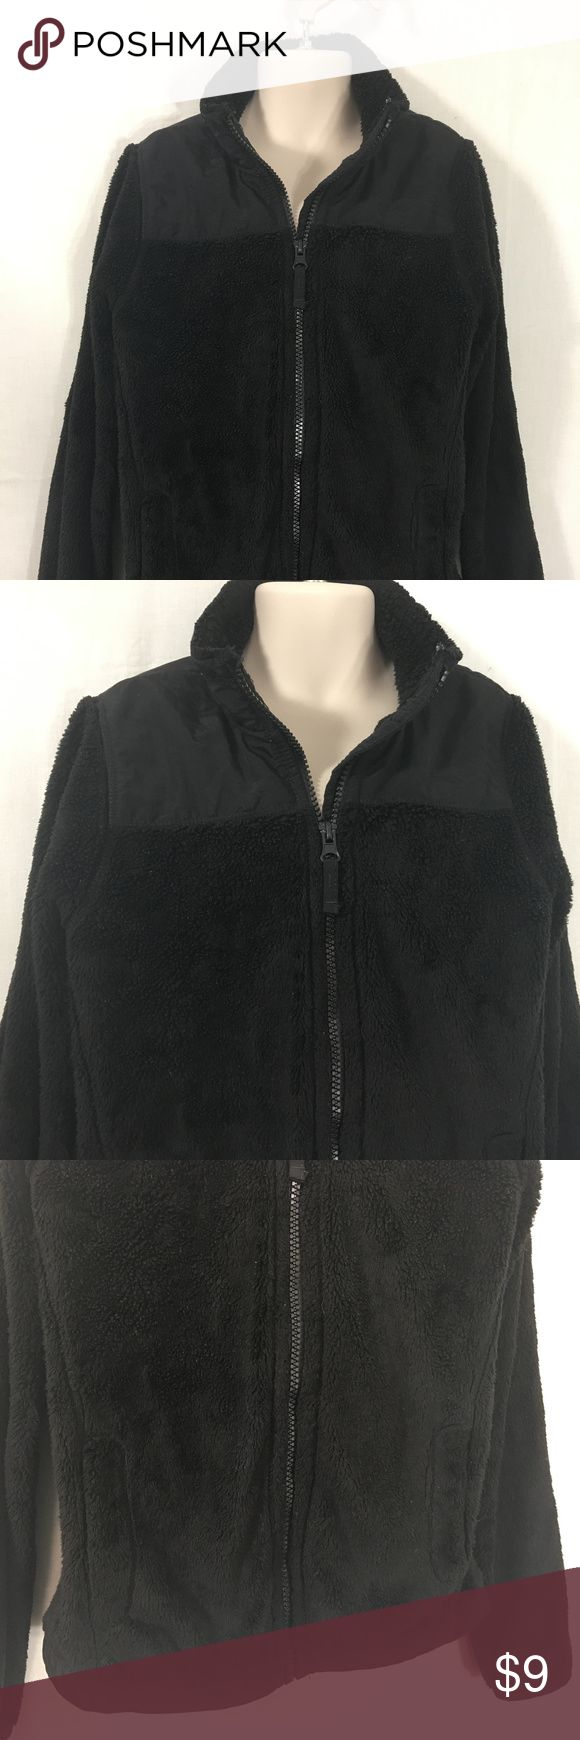 """Childrens Place Girls Black Fleece Jacket Coat 7/8 Children's Place Girls Black Fleece Jacket Kids Coat  SALE CODE: GREEN  •Size: 7-8 kids  (please read measurements as different brands size differently and previously owned clothing may be shrunk or stretched) •Measurements: 16.25"""" armpit to armpit and 19.75"""" long, 20"""" sleeve.   •Material: polyester & nylon •Style: fleece style fuzzy jacket  •In good previously owned condition Children's Place Jackets & Coats"""